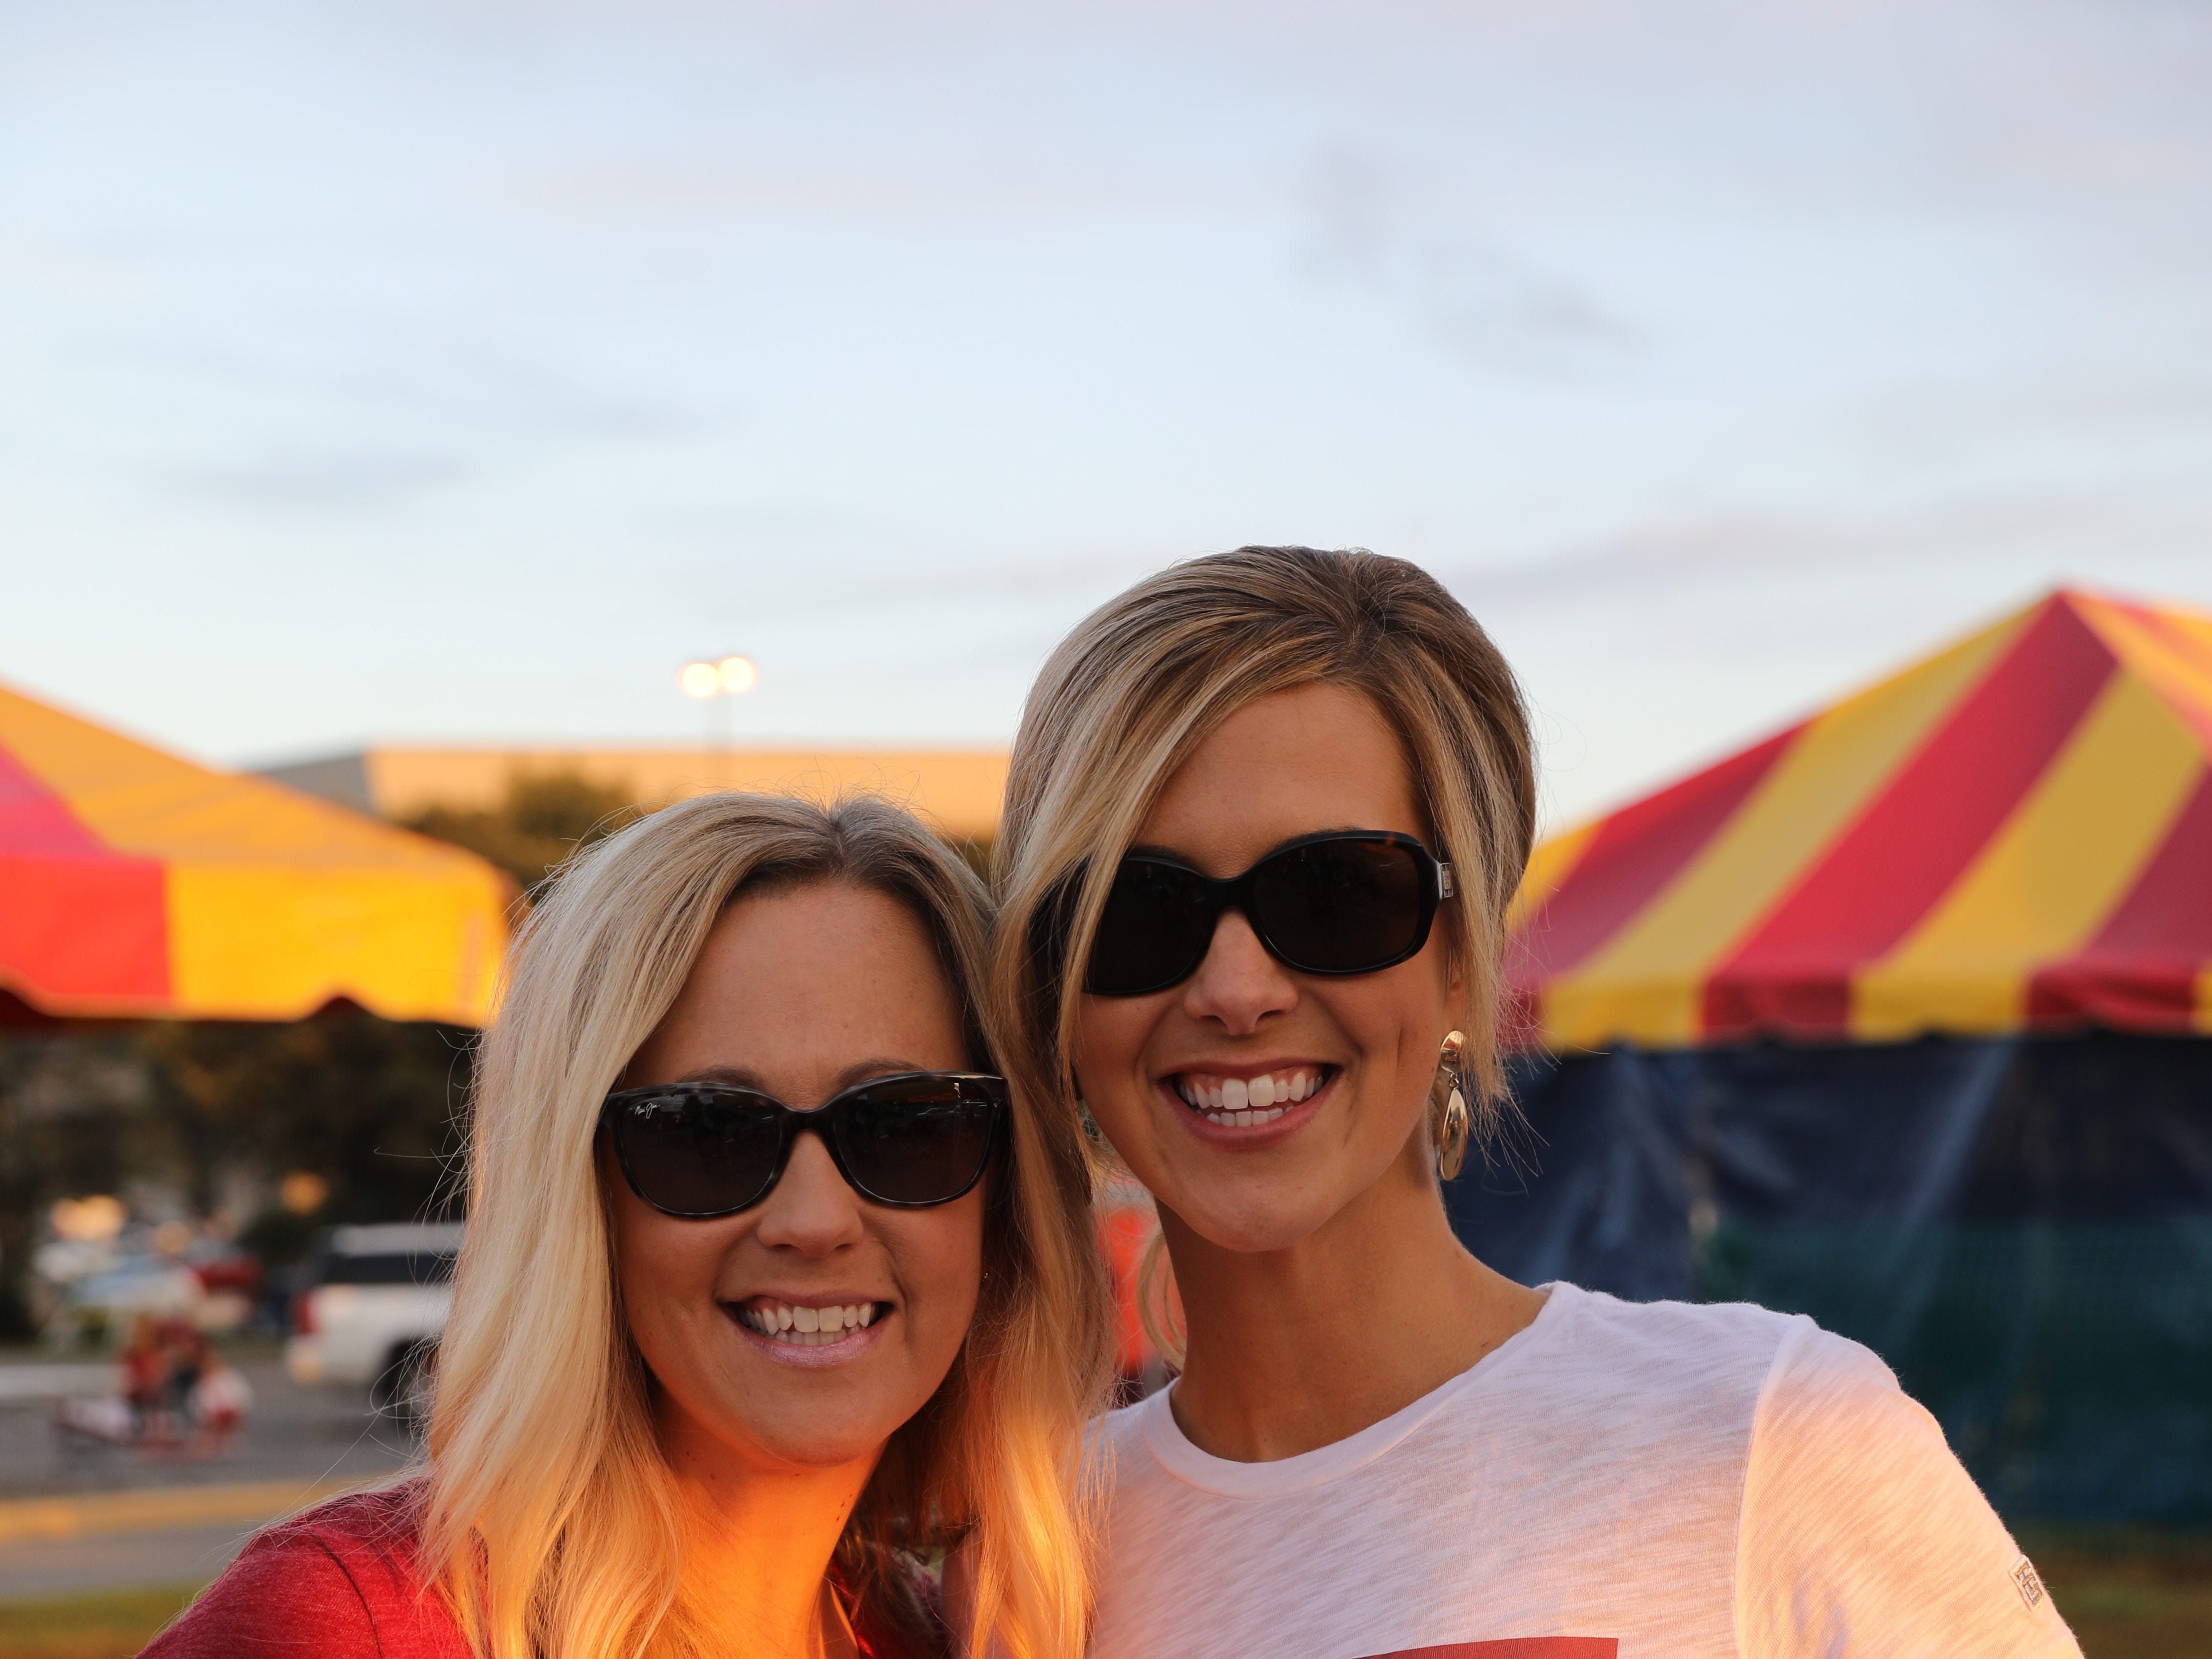 Krista Christensen of West Des Moines (left) and Laura Jackovin of Clive Saturday, Sept. 15, 2018, before the Iowa State football game against Oklahoma in Ames.